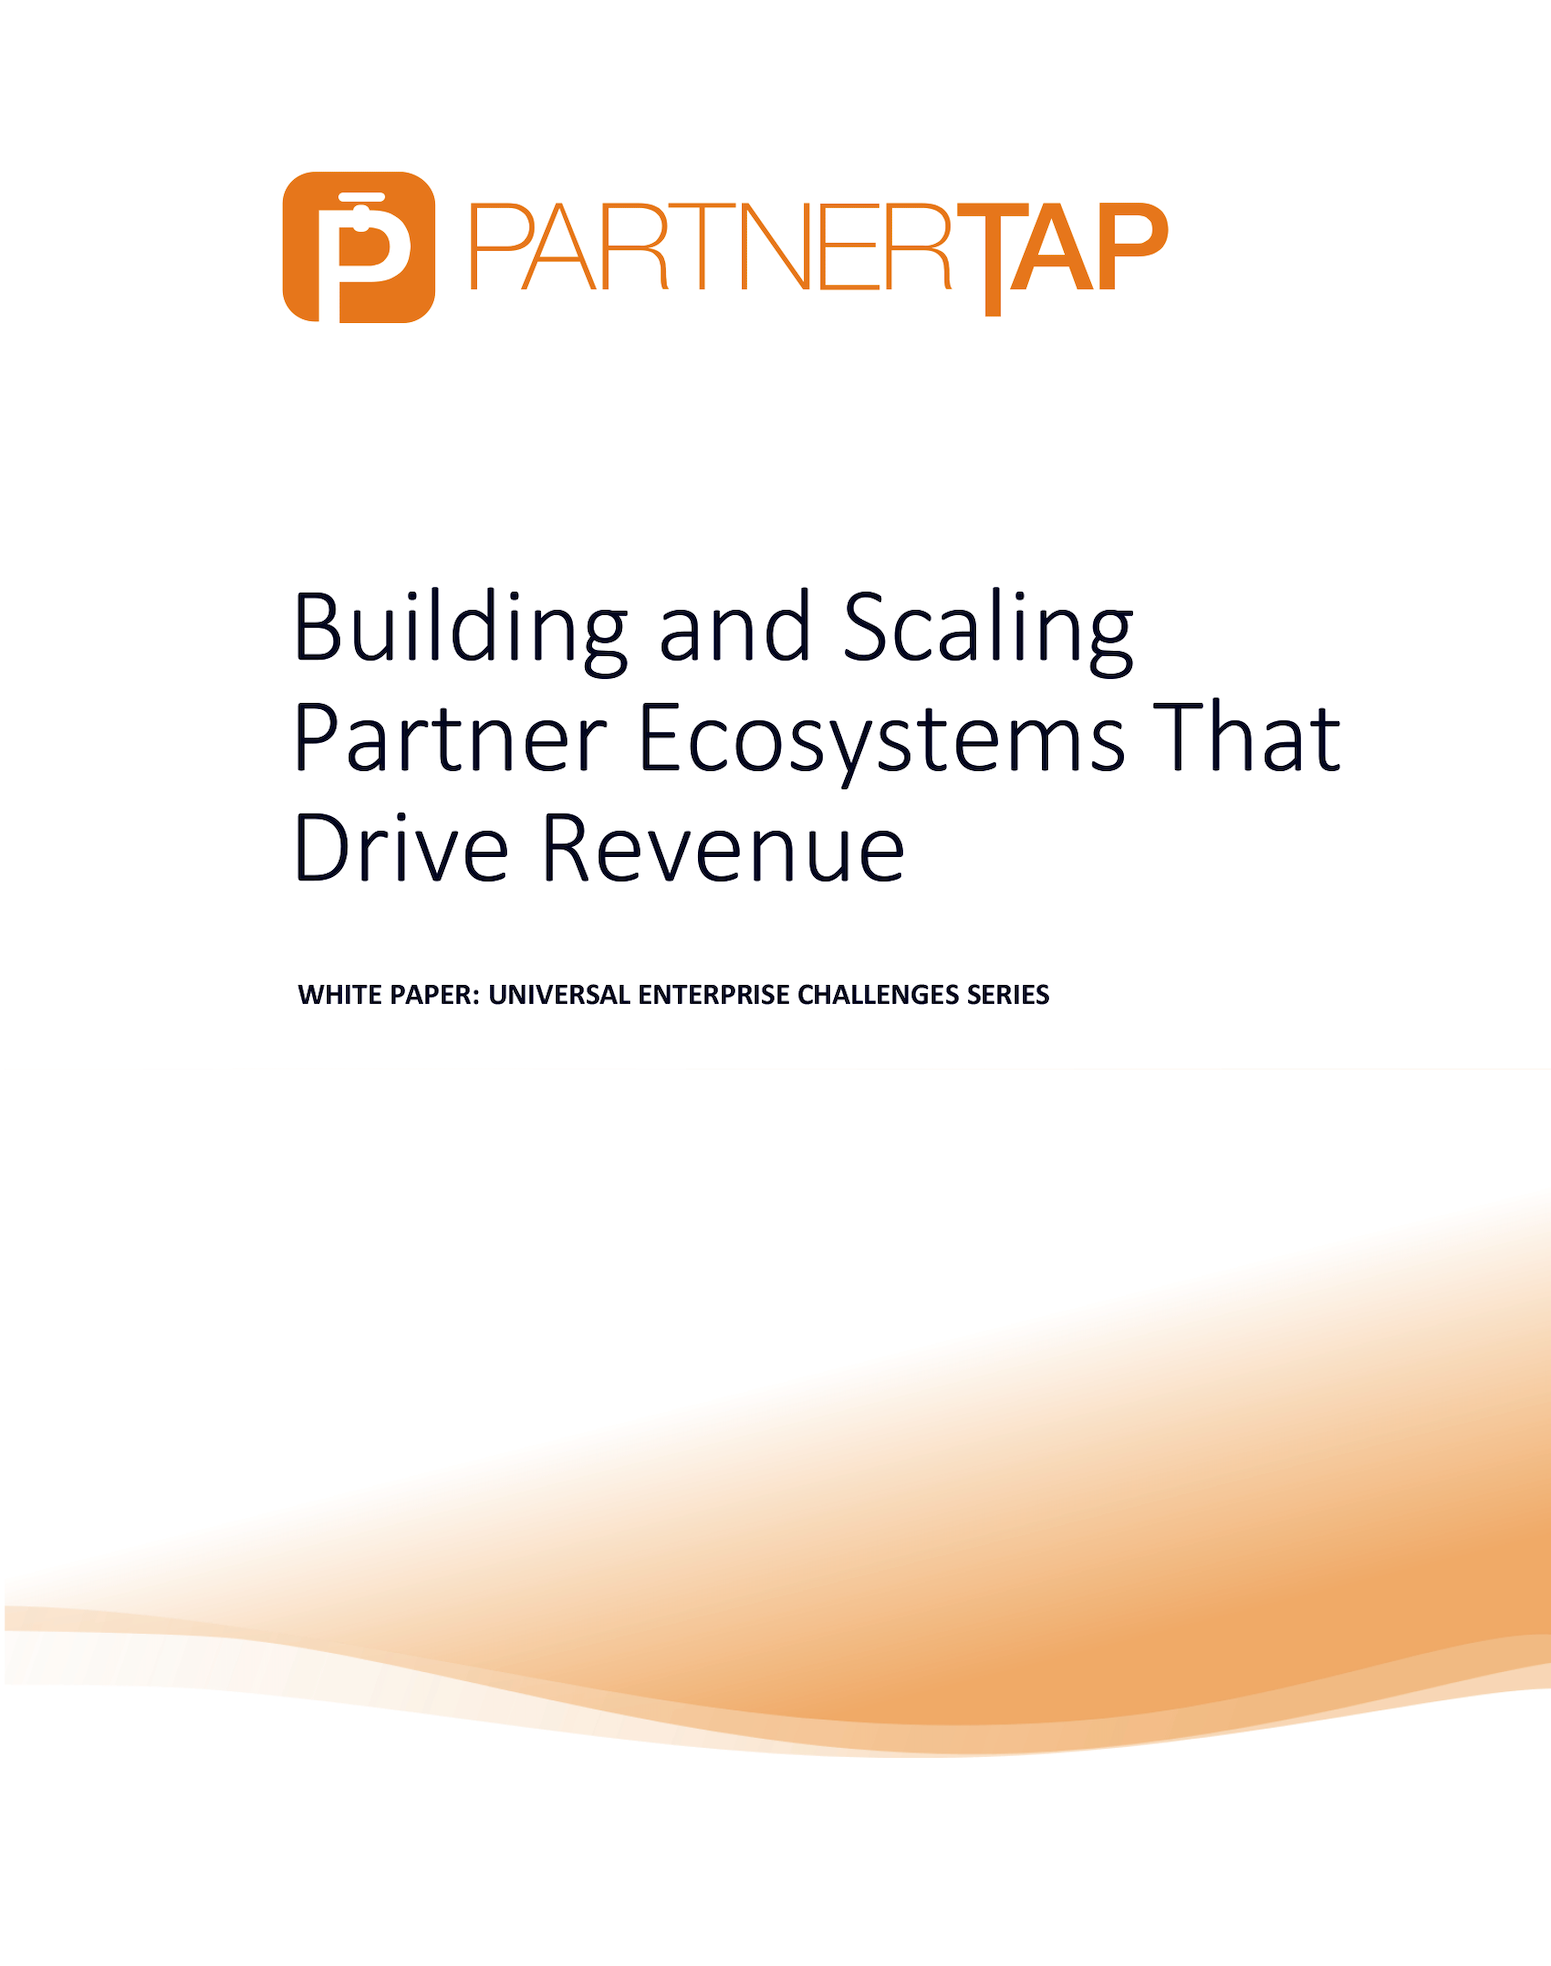 Building Partner Ecosystems Whitepaper